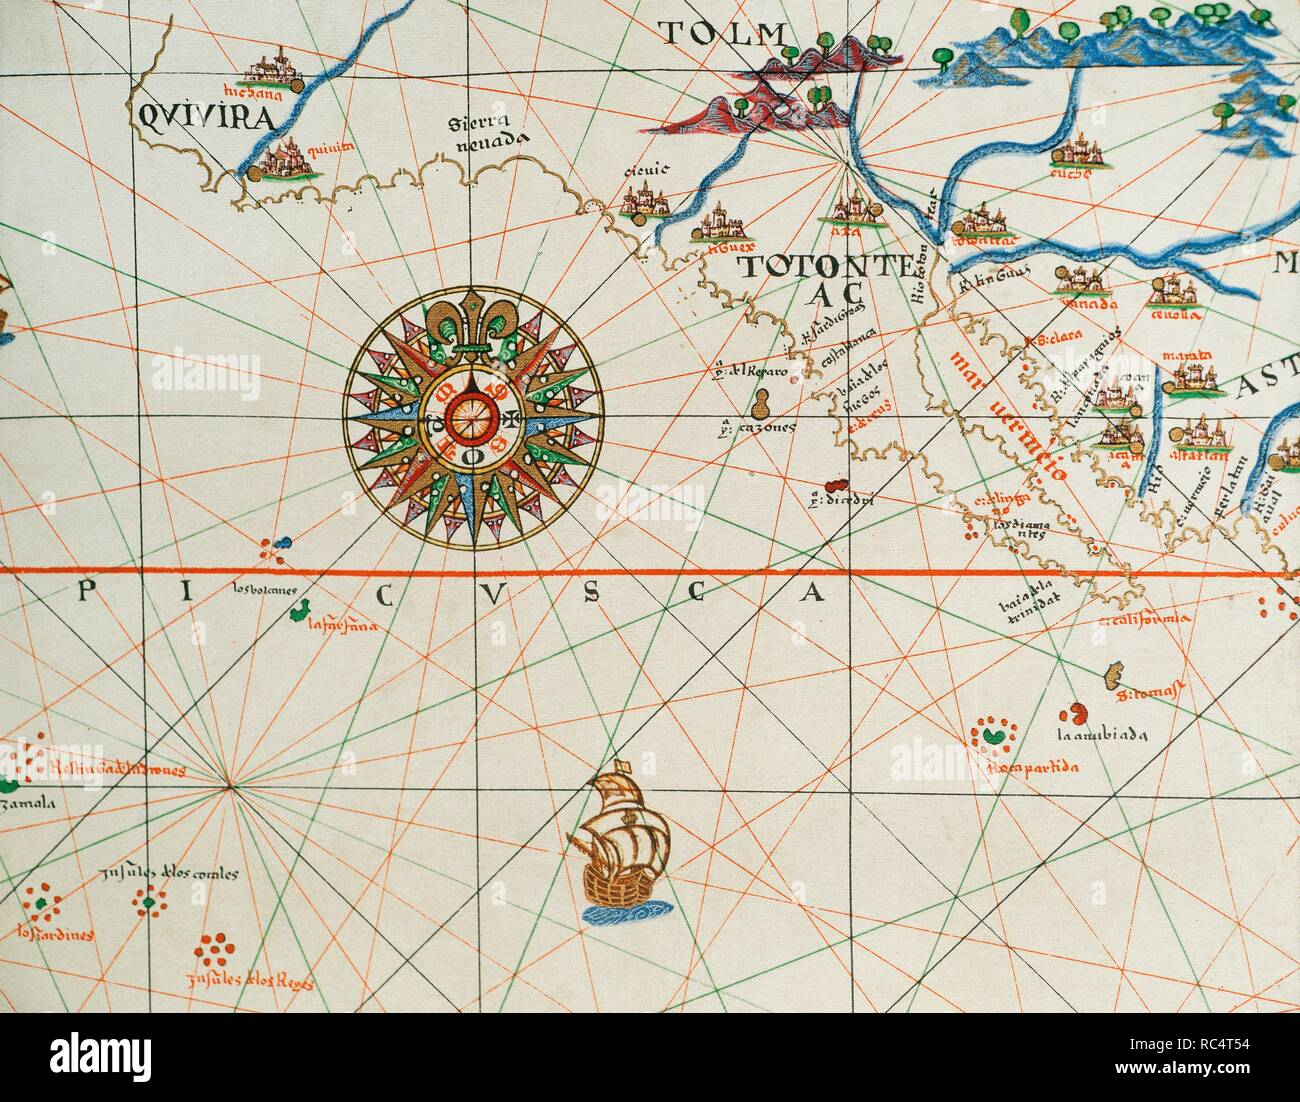 Coast of high and low california and compass rose. Nautical chart. Atlas of Joan Martines, 1587. Dedicated to Philip II. Mallorcan School. Stock Photo